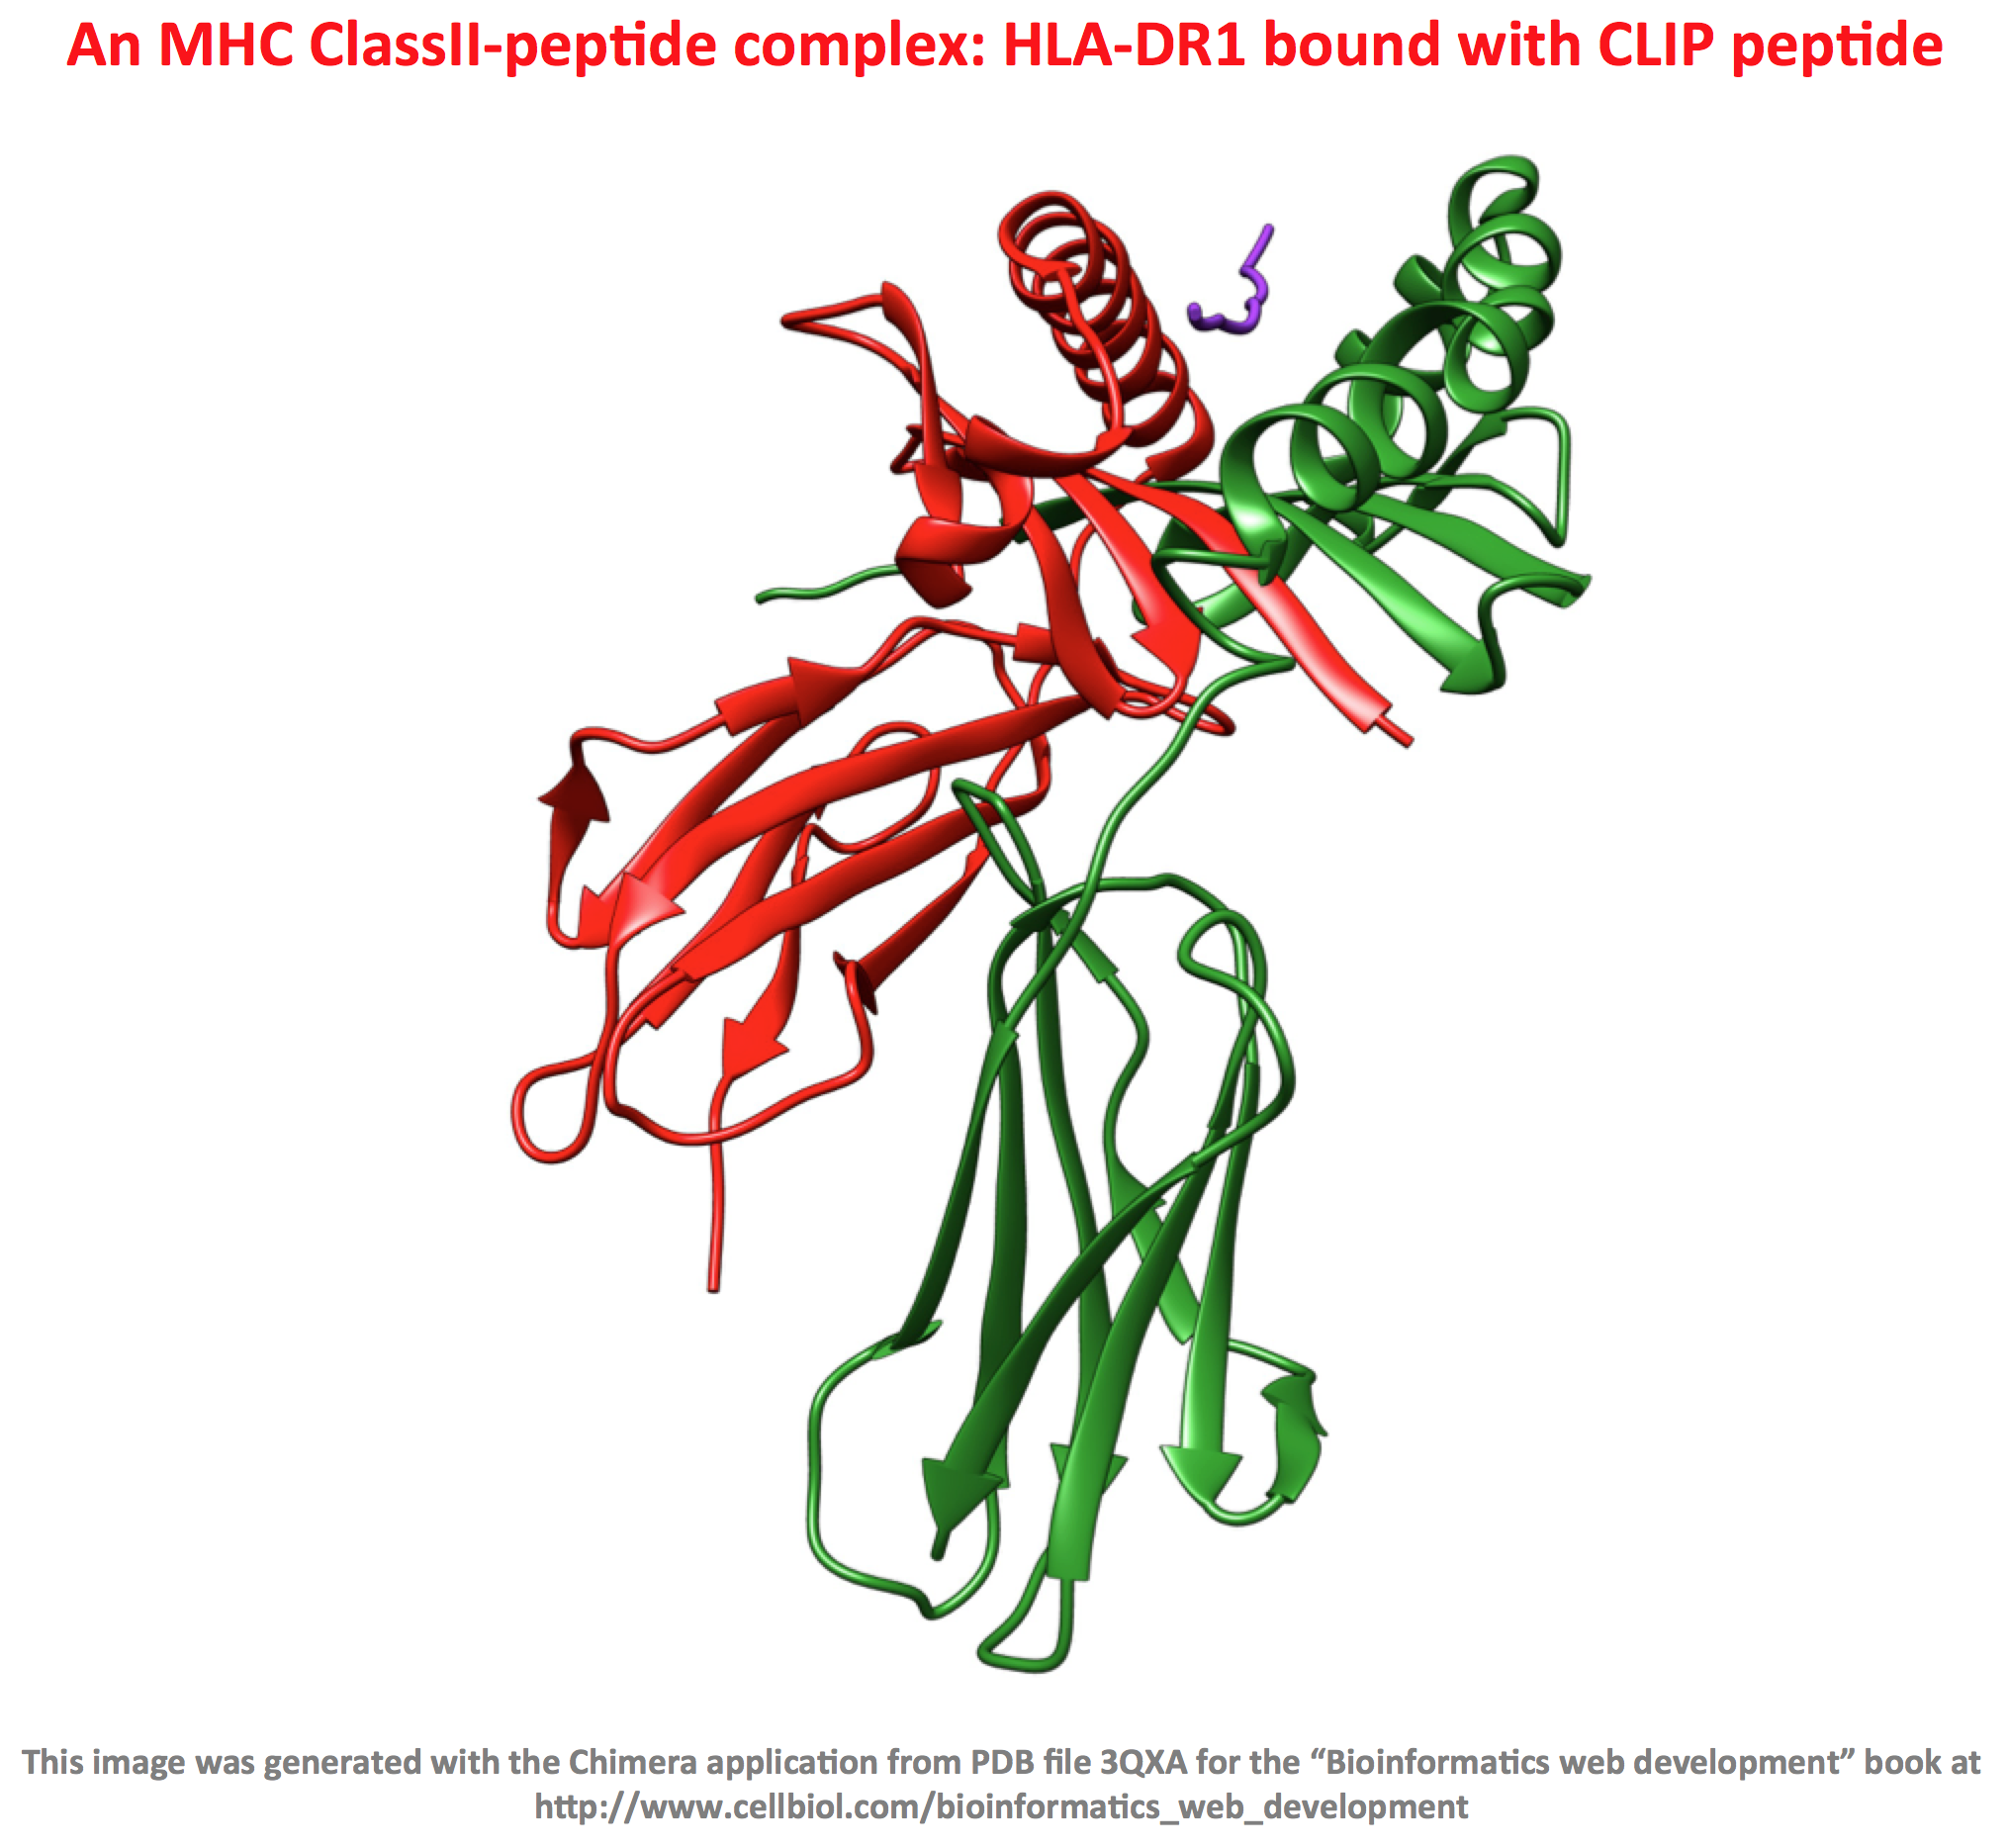 An MHC ClassII-peptide complex: HLA-DR1 bound with CLIP peptide